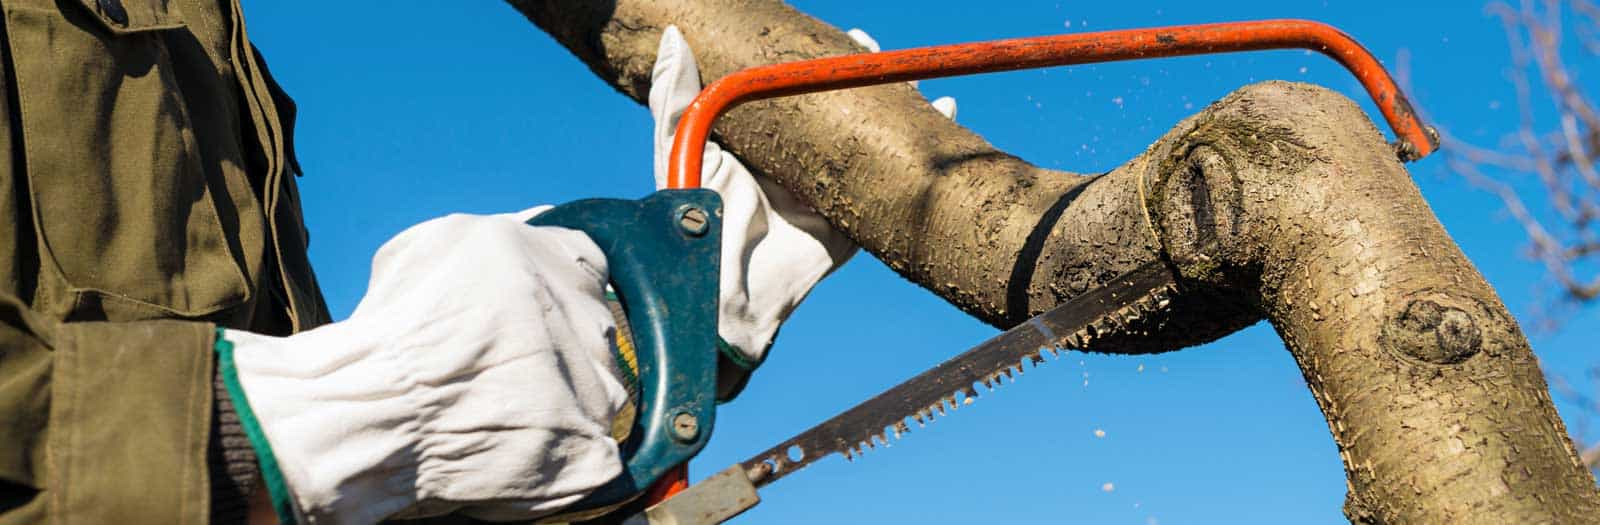 close up of man pruning a tree with a saw